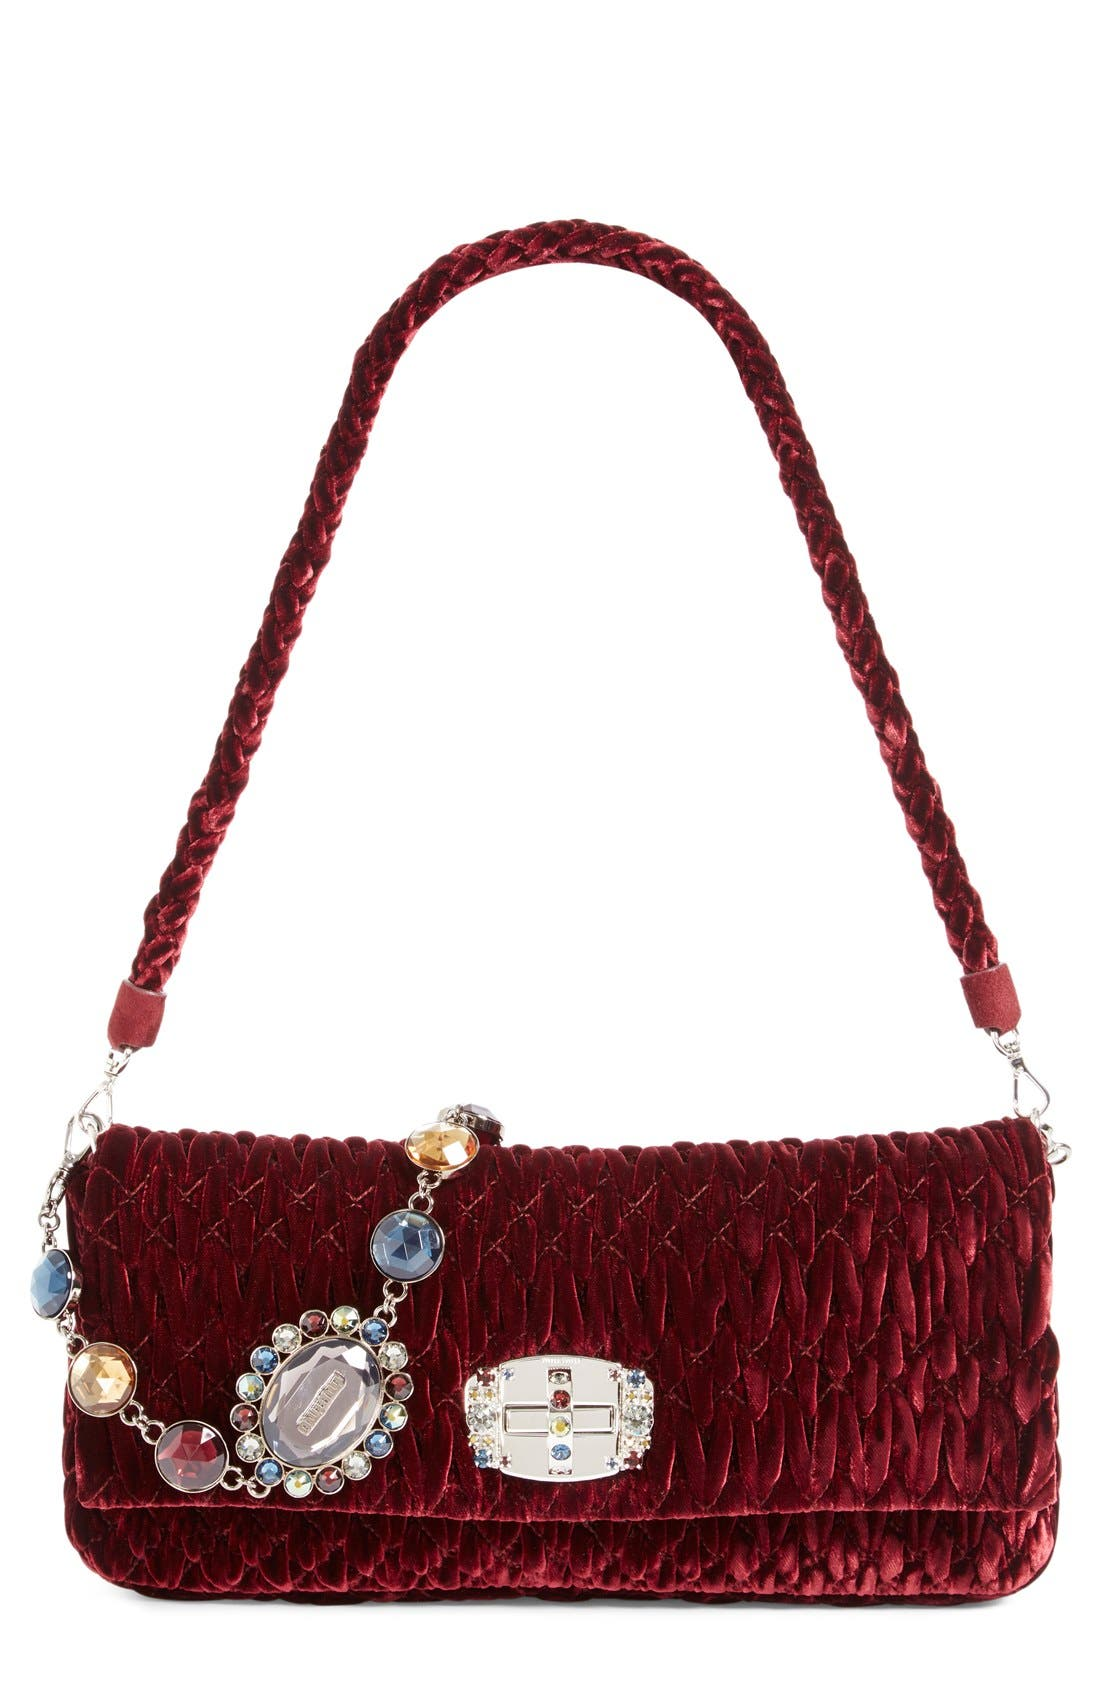 Medium Crystal Embellished Quilted Velvet Shoulder Bag,                             Alternate thumbnail 4, color,                             BORDEAUX